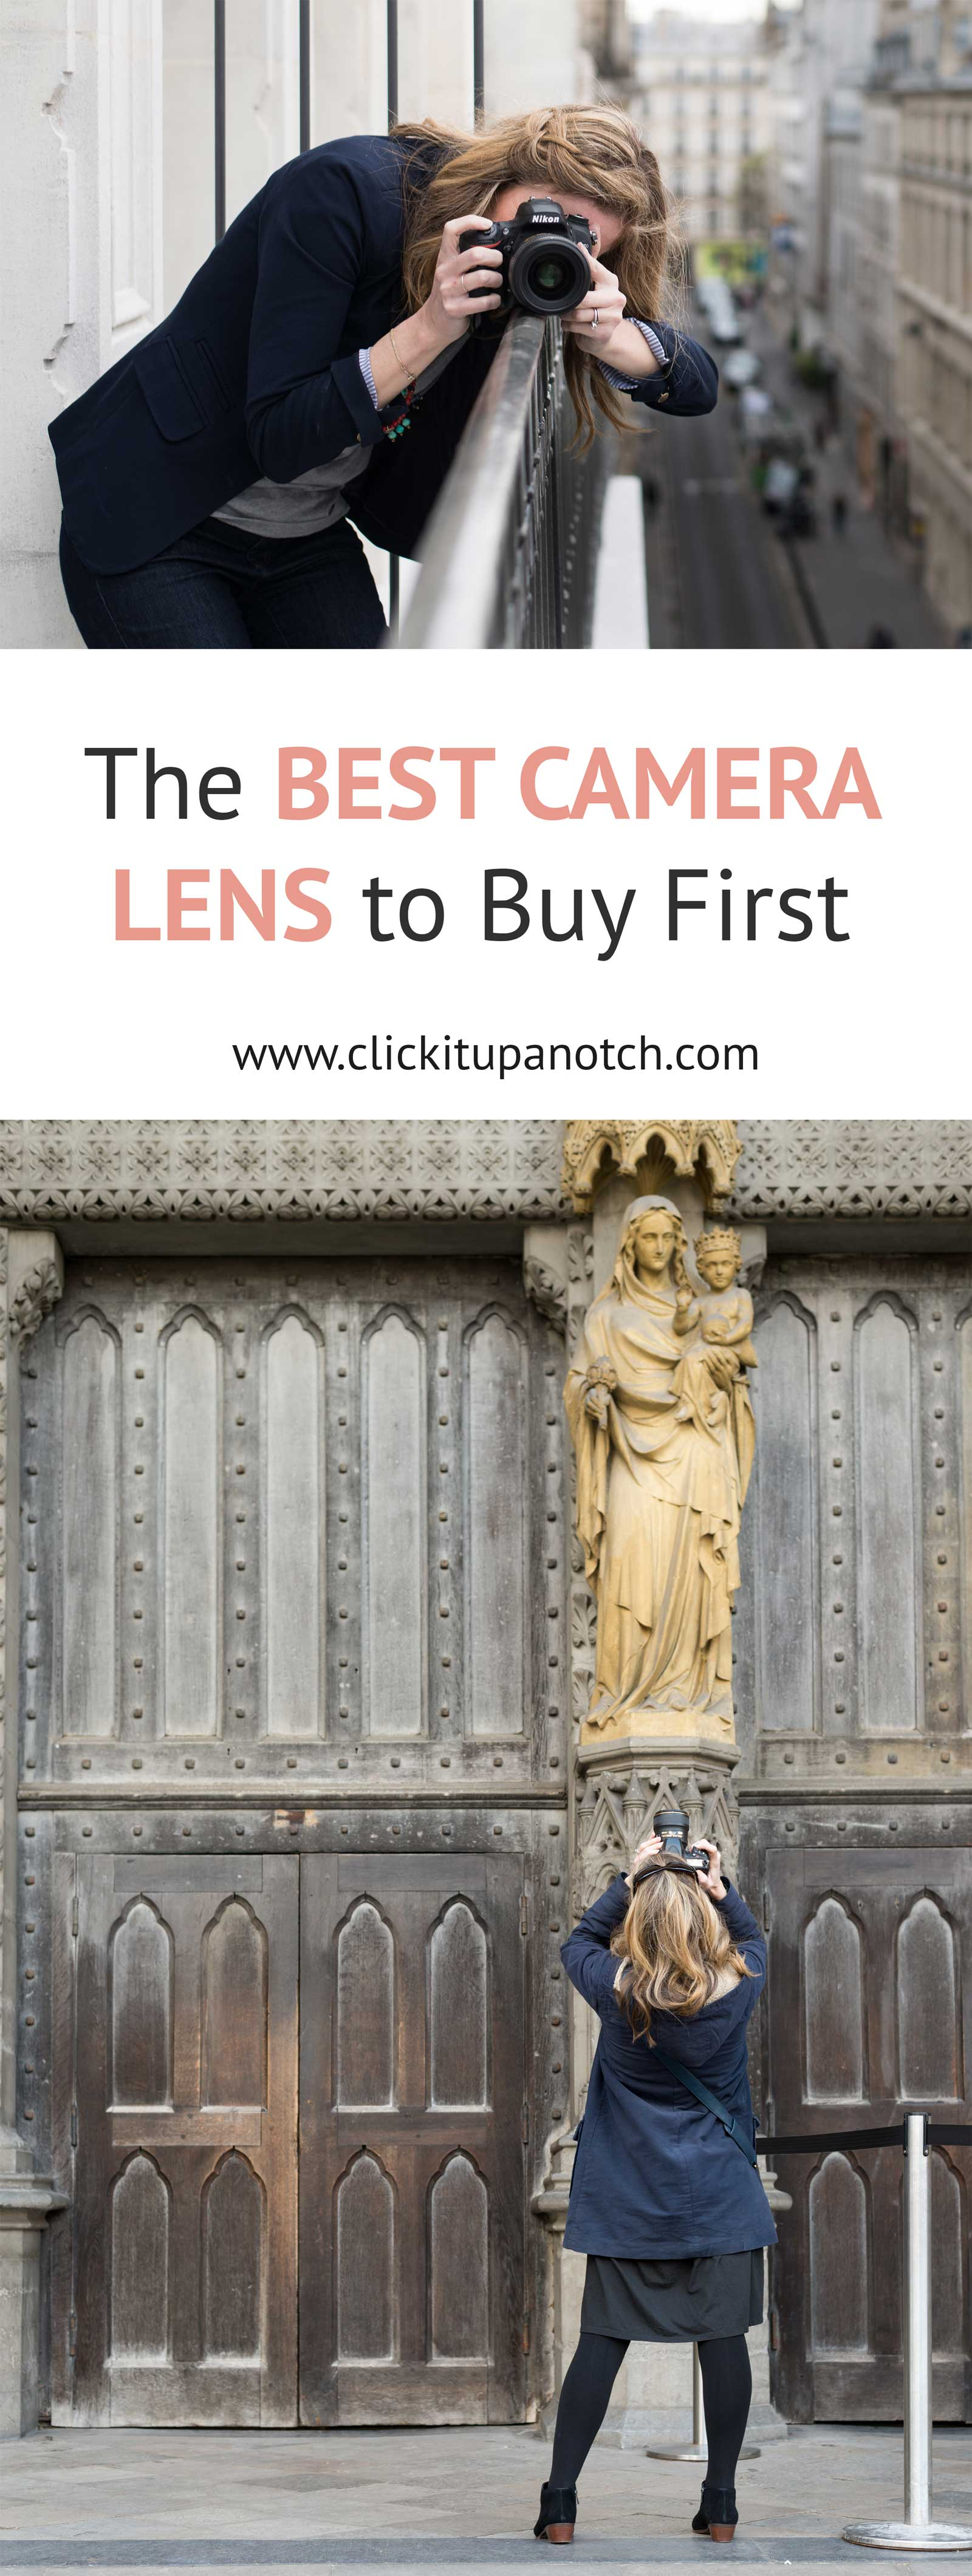 Curious to what lens you should purchase first? Start with this amazing lens that packs a lot of bang for it's buck. The Best Camera Lens to Purchase First